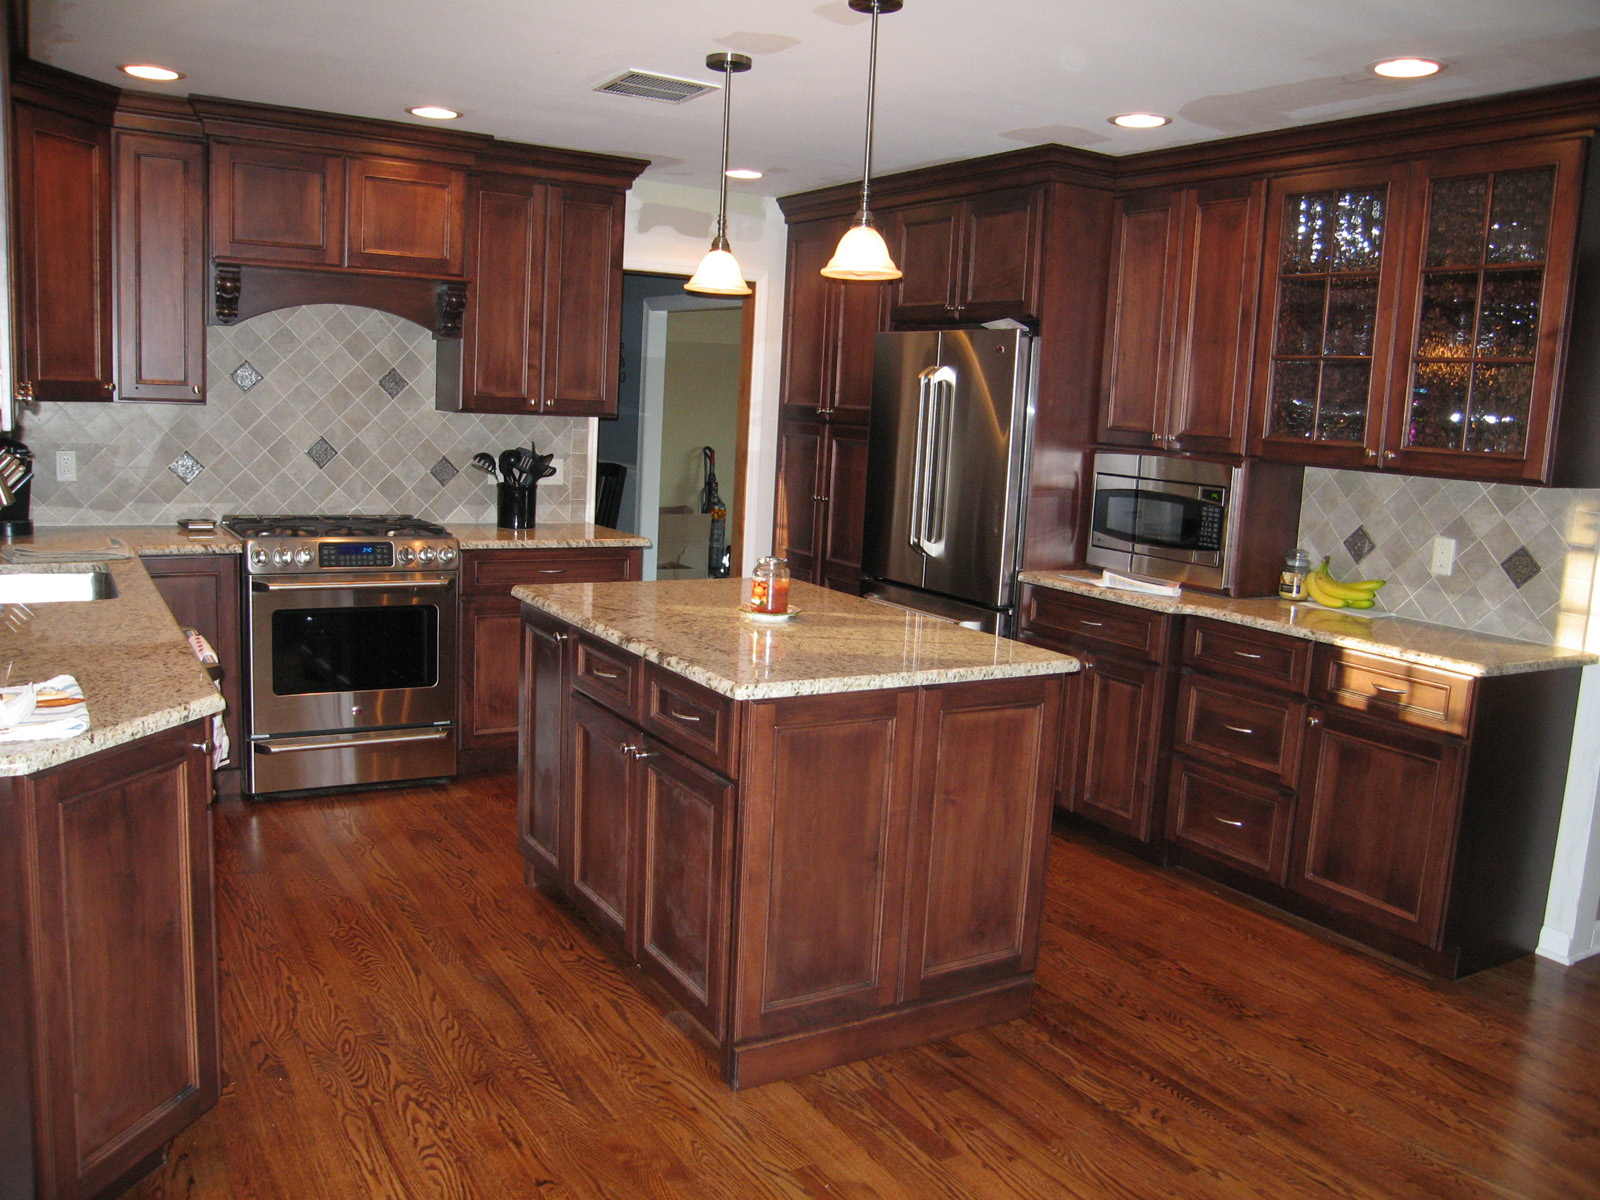 Custom Kitchens By Chuck Kitchen Bathroom Countertop Cabinets Flooring Fireplace Mantel Remodeling New Jersey